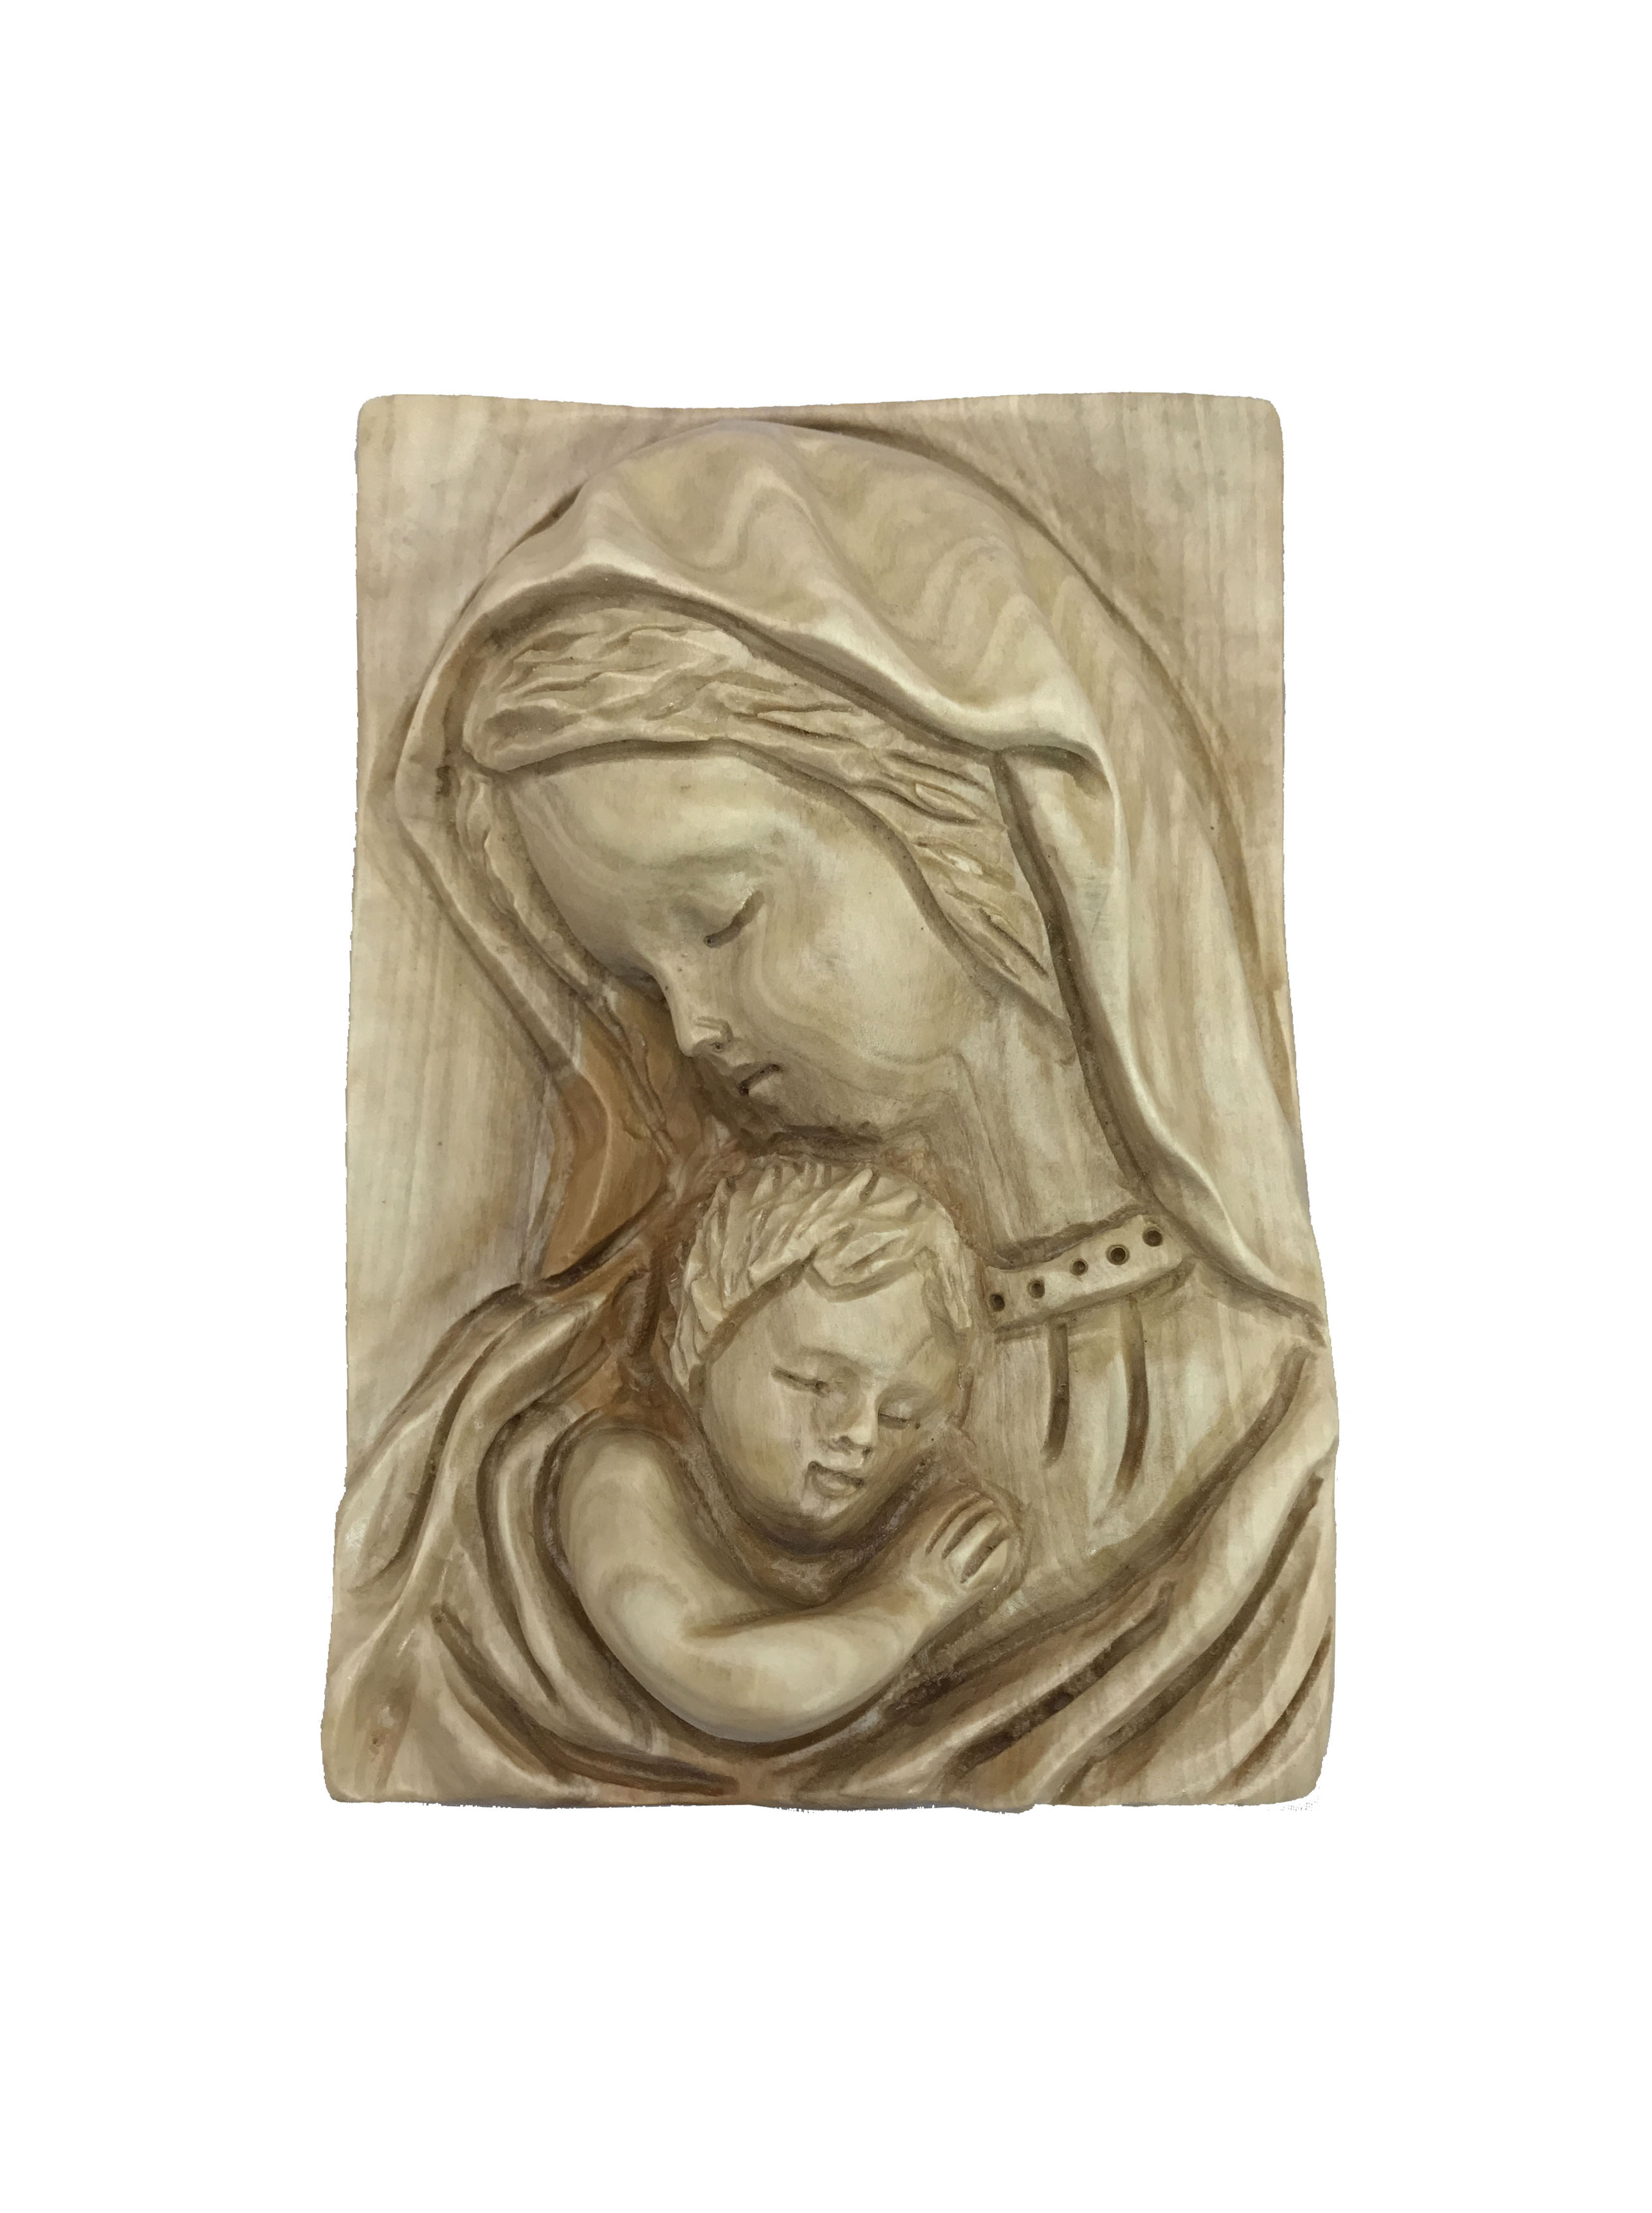 Wood Wall Hanging olive wood wall hanging virgin mary with baby jesus-sunu - three